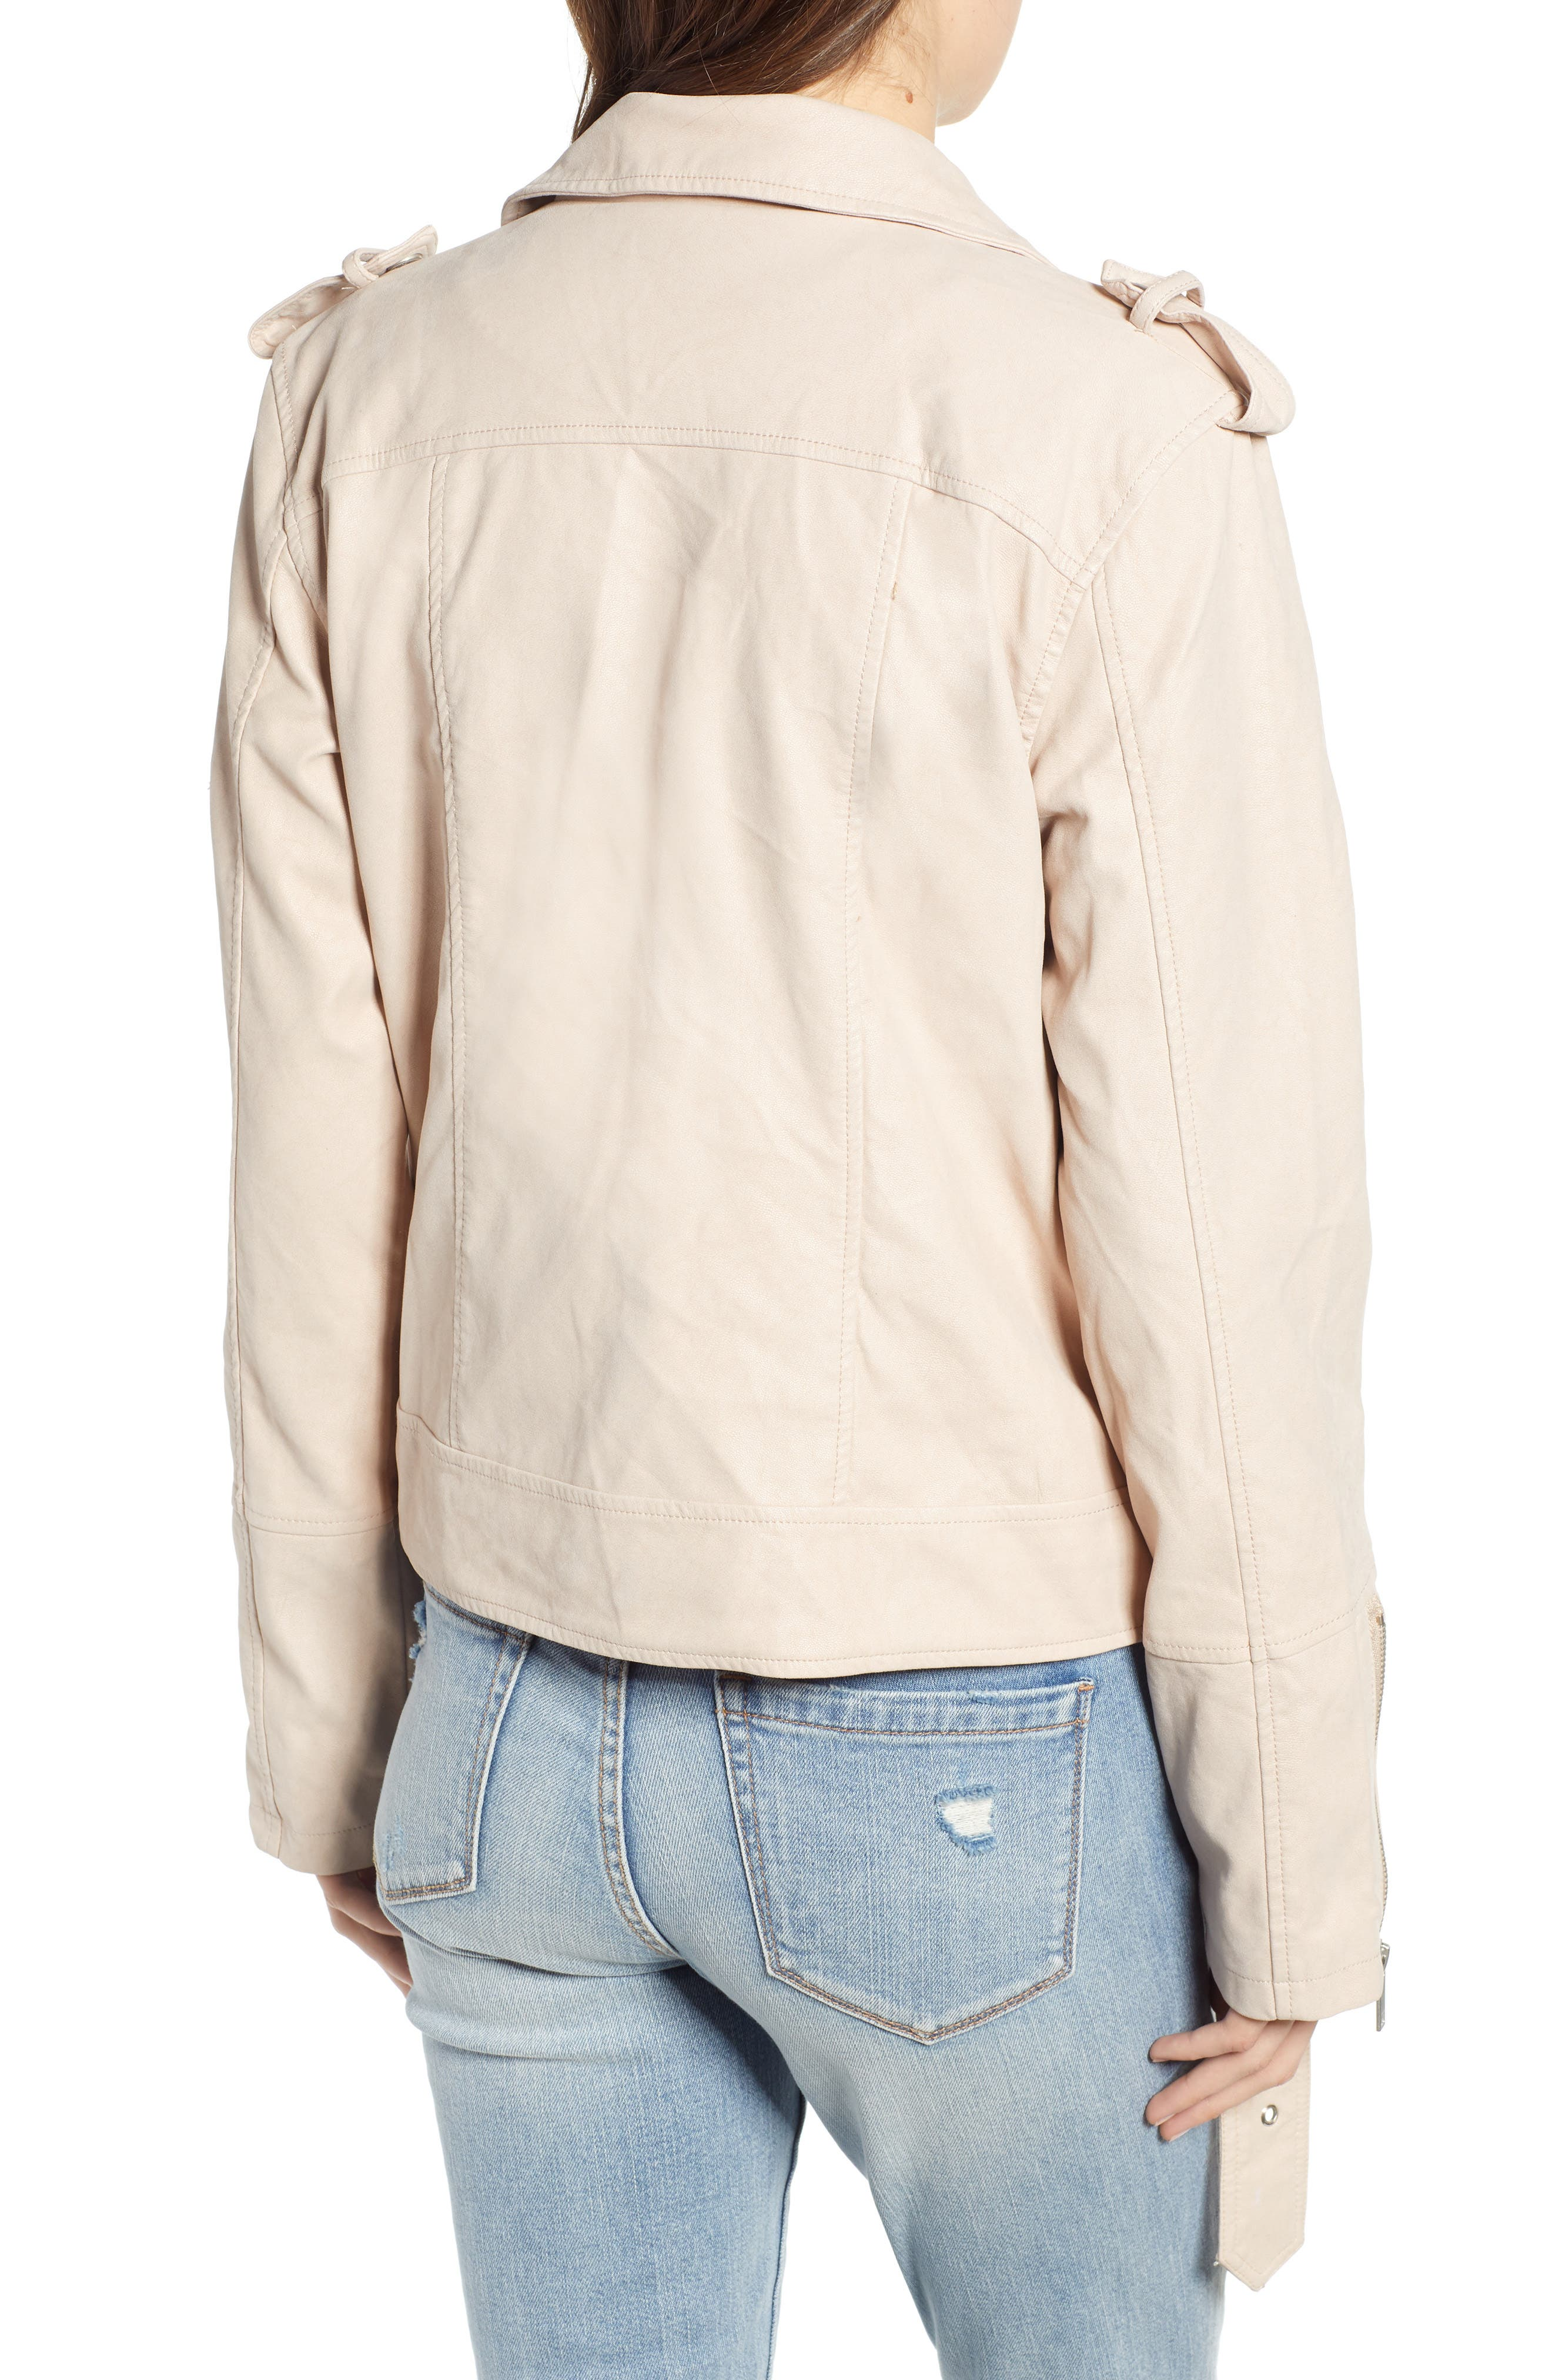 THREAD & SUPPLY,                             Mitch Faux Leather Moto Jacket,                             Alternate thumbnail 2, color,                             BLUSHING PINK